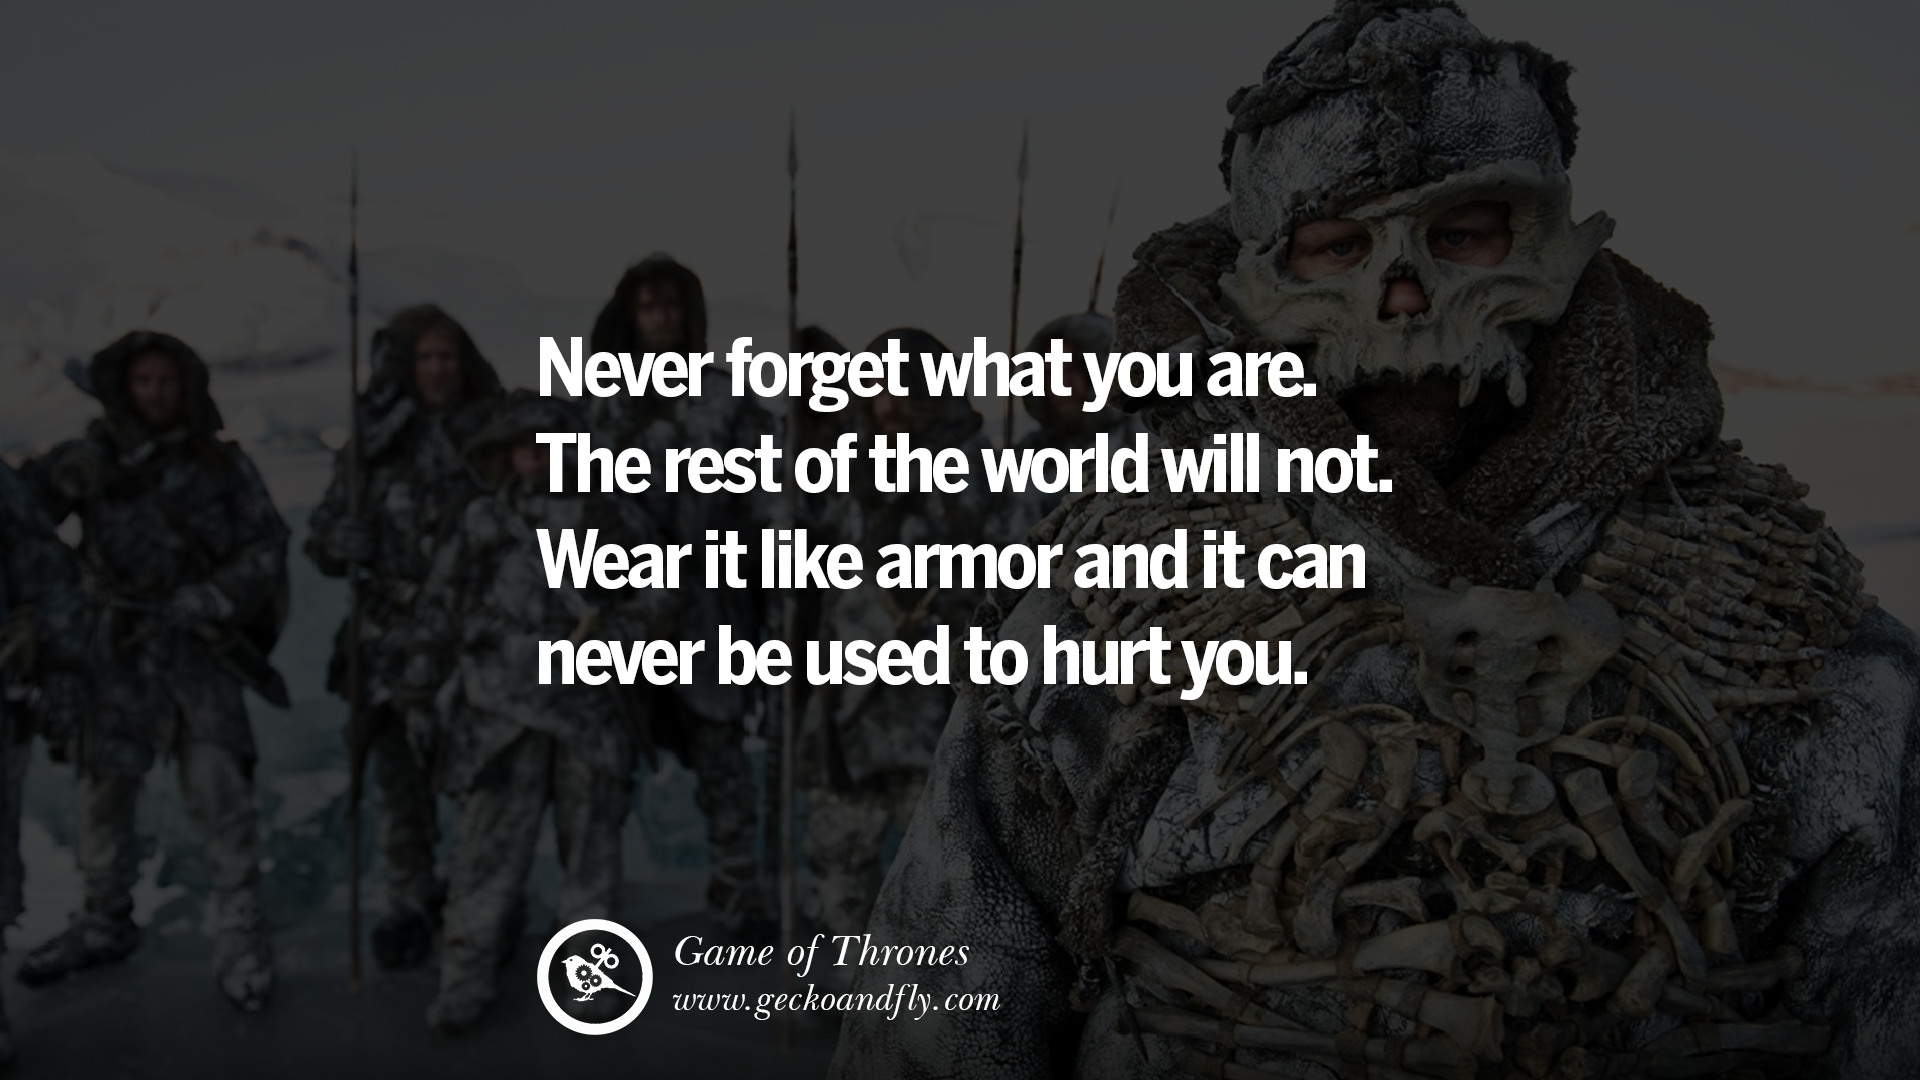 Military Motivational Quotes 15 Memorable Game Of Thrones Quotesgeorge Martin On Love